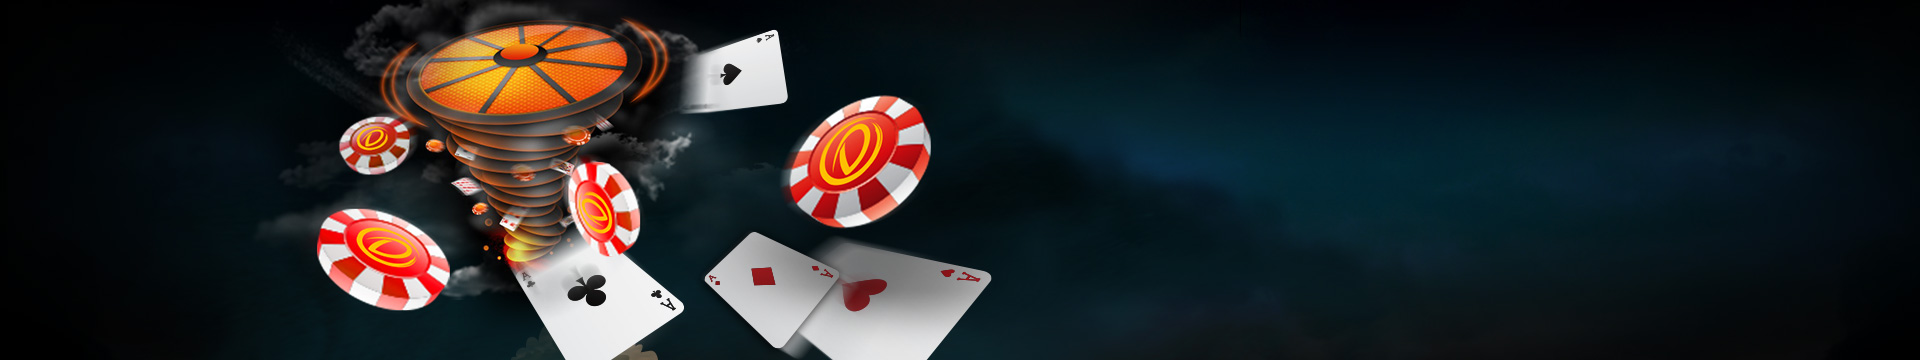 Online Poker Promotion: Dafabet Twister Poker